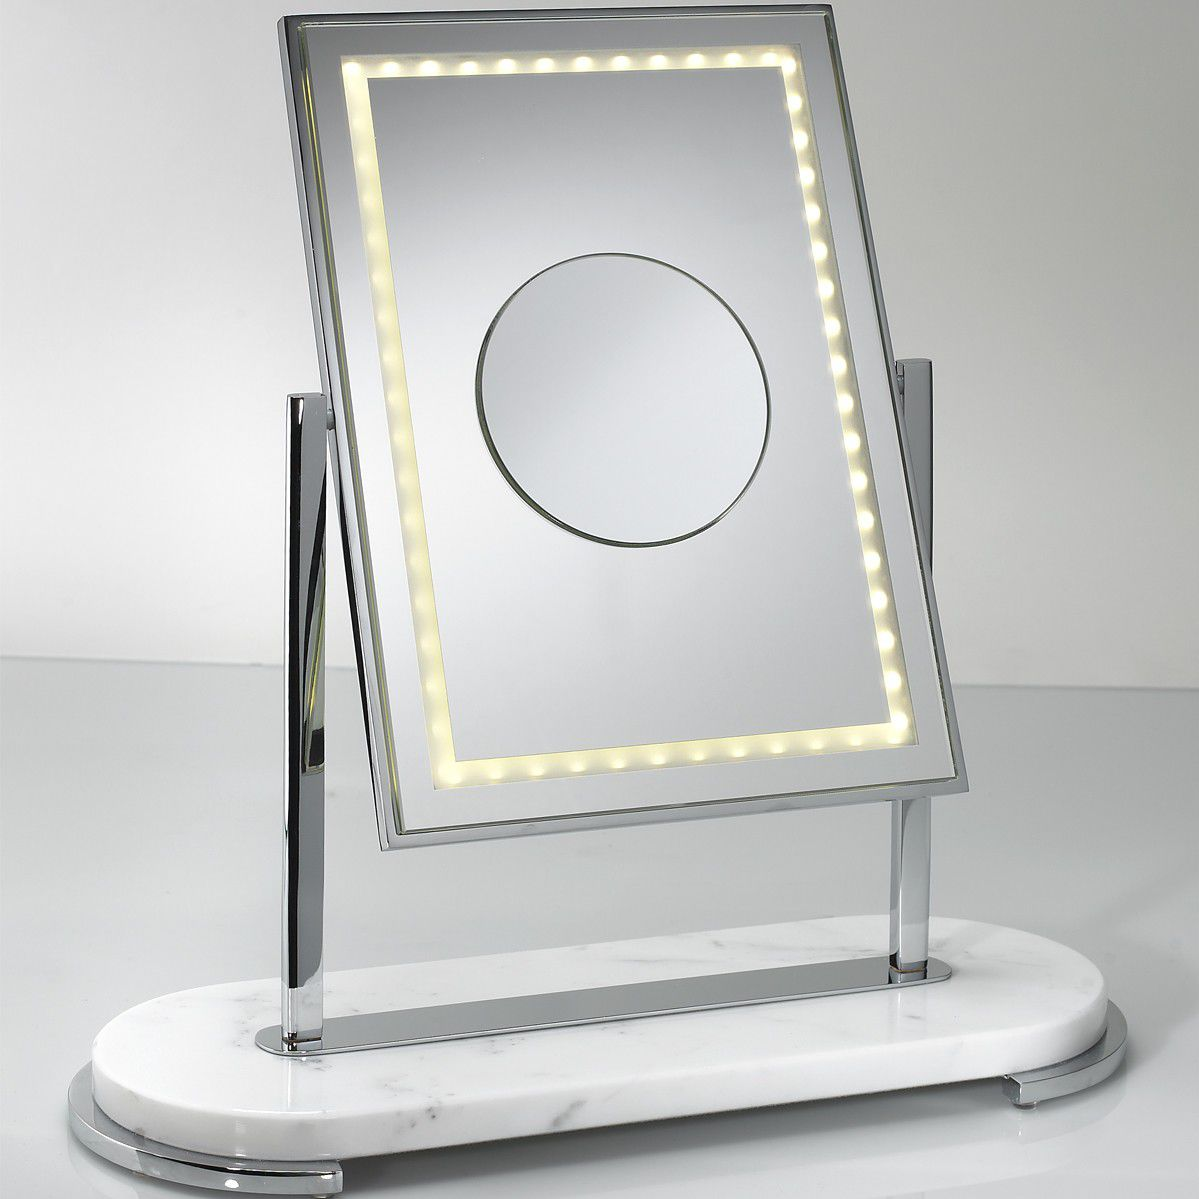 Table bathroom mirror / double-sided / illuminated / magnifying ...